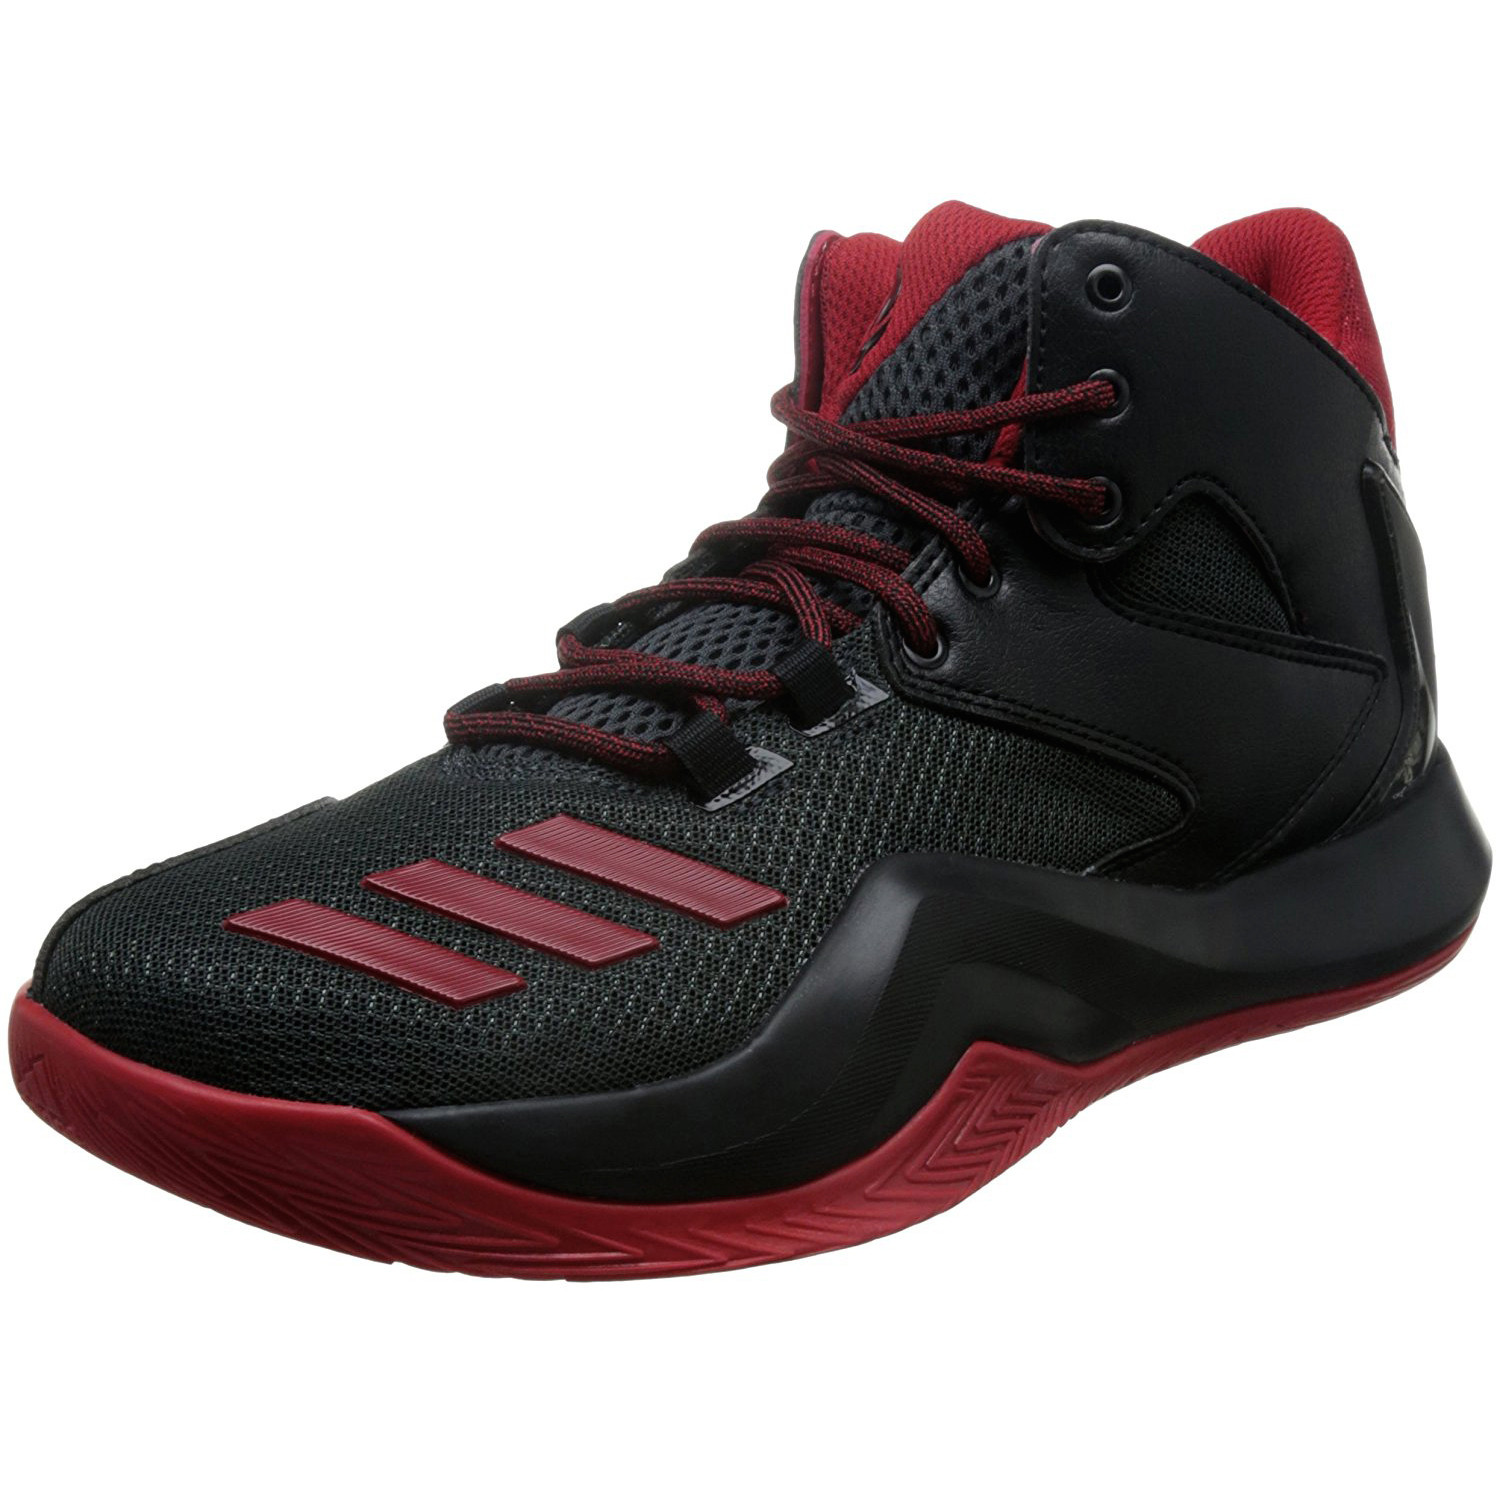 online store bfd1b 83eaa adidas 773 cher Chaussure ADIDAS 773 de Homme Rose ...